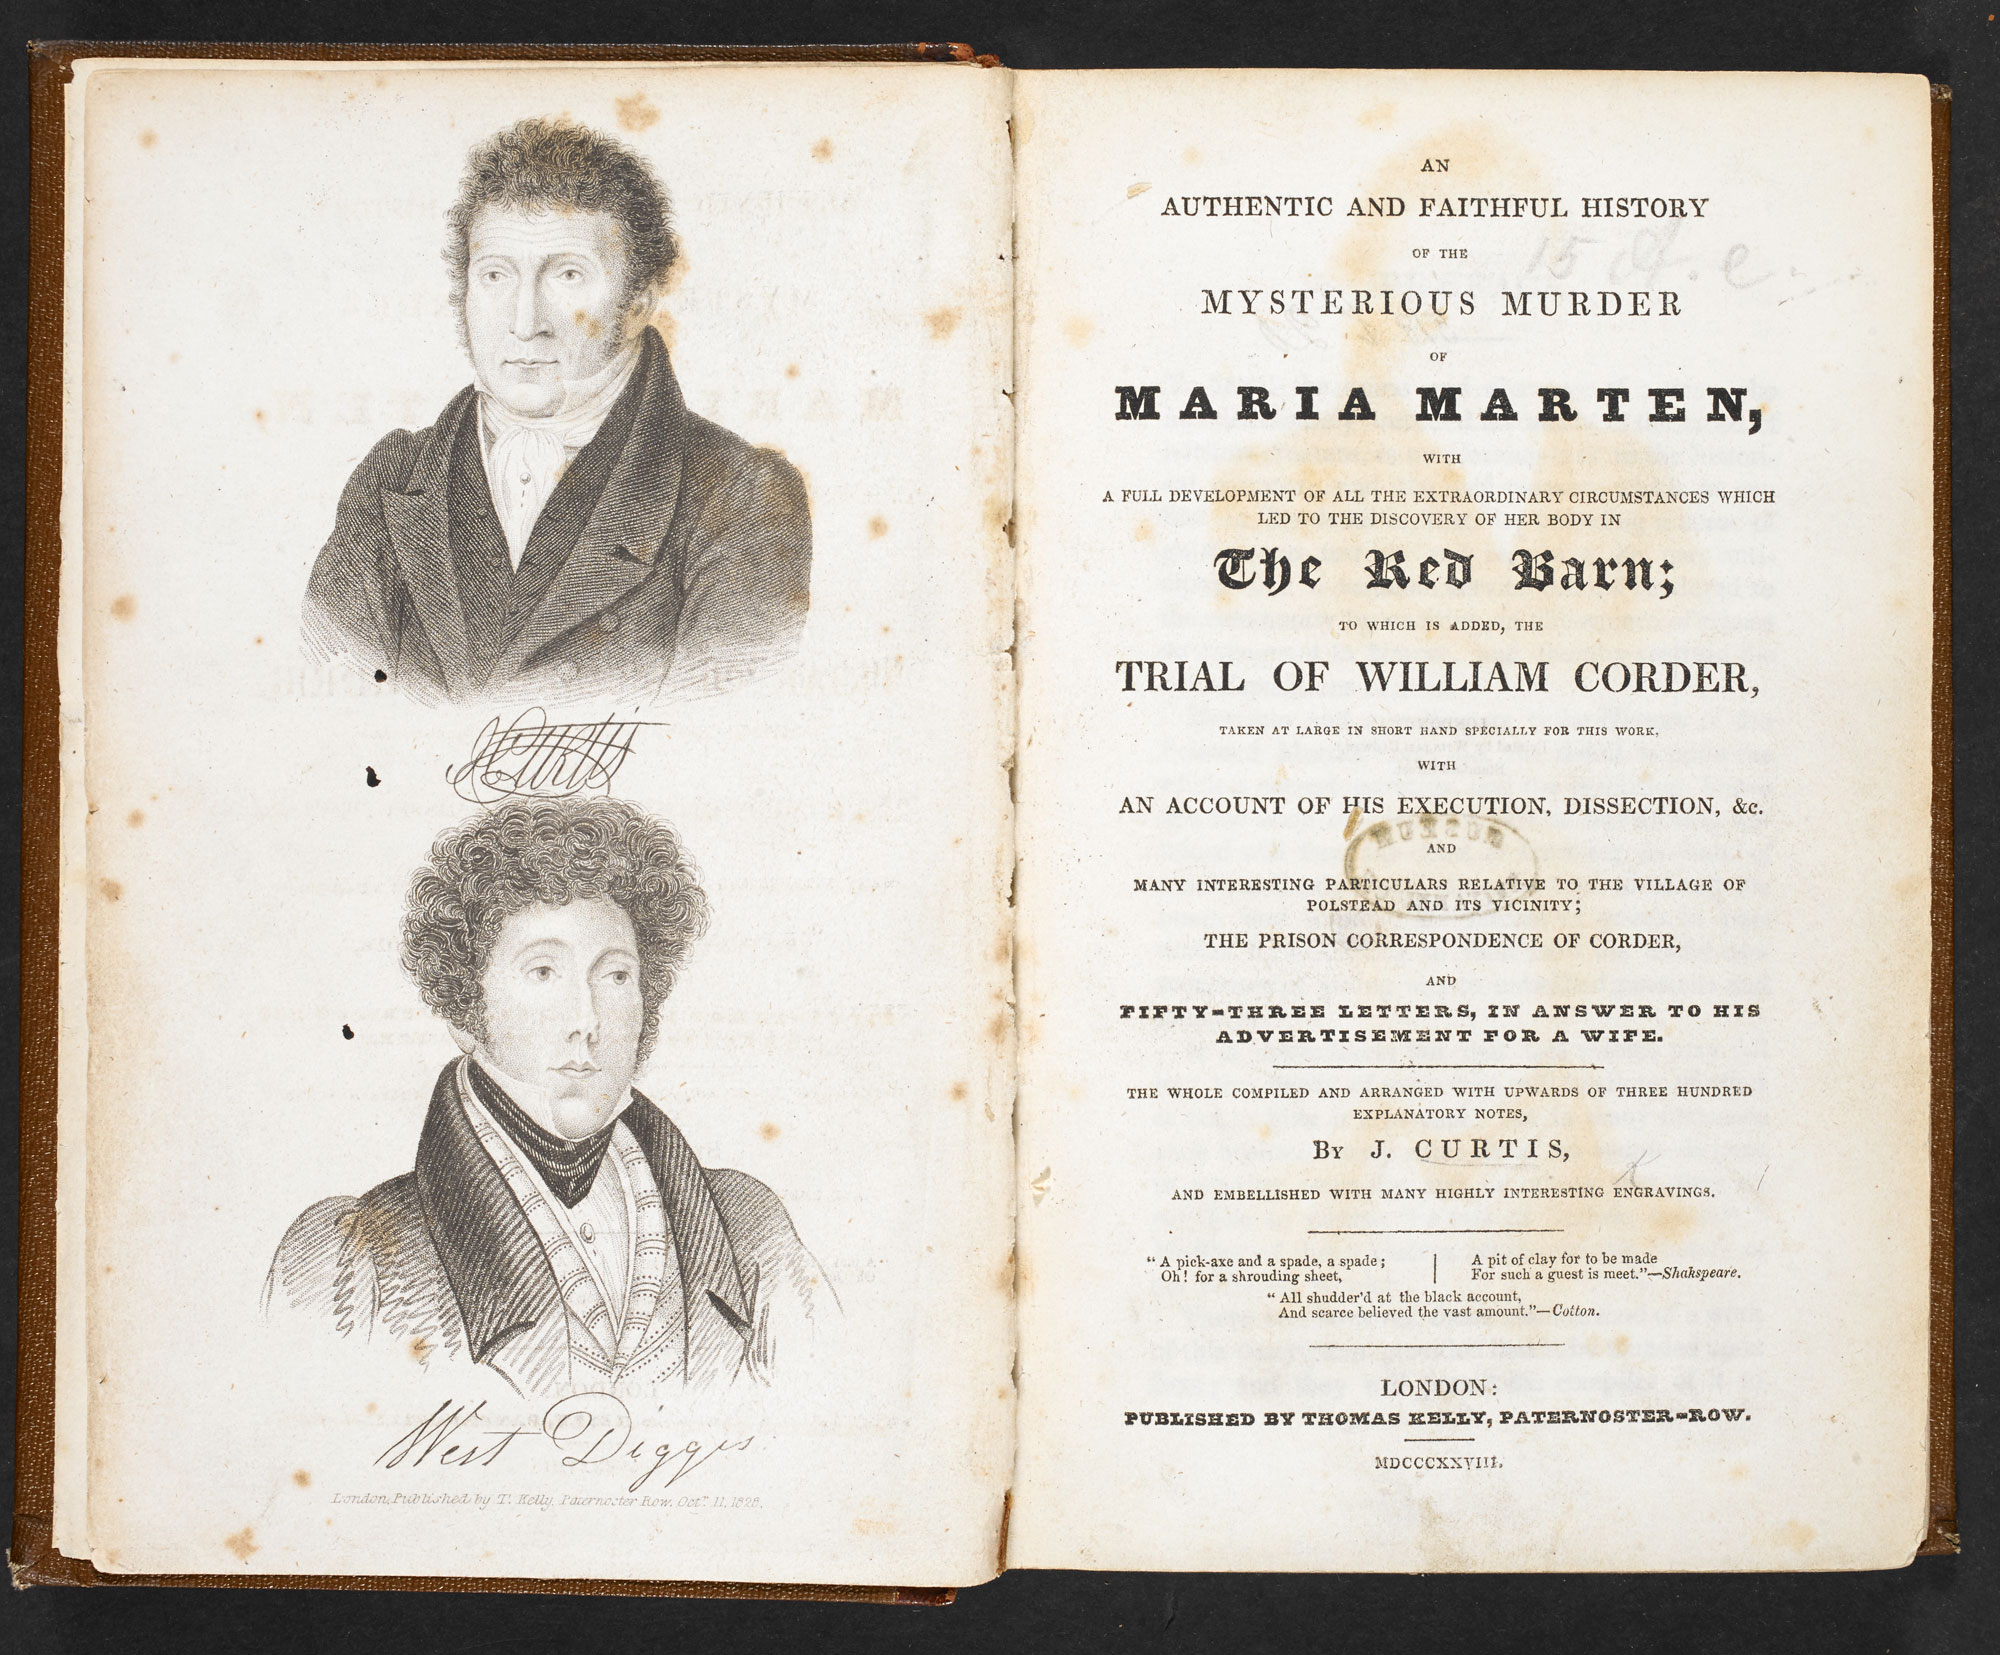 An Authentic and Faithful History of the mysterious murder of Maria Marten [page: frontispiece and title page]